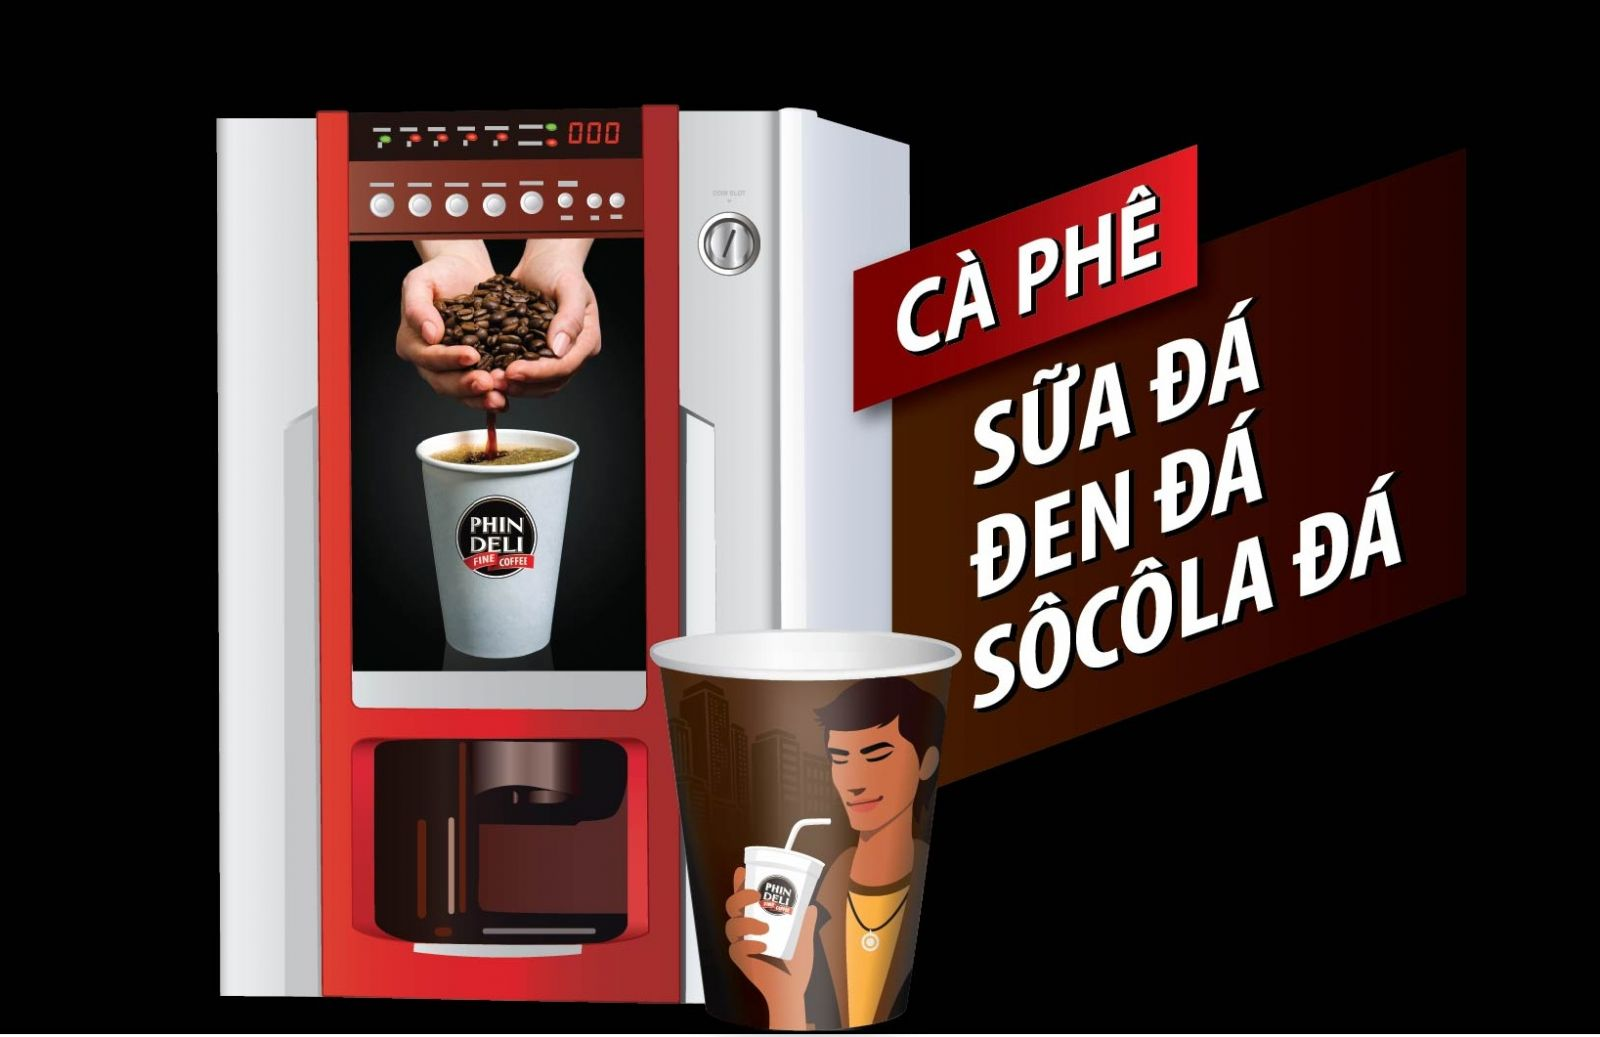 Ly Cafe Socola Phindeli 4 in 1 (Take away - mang đi)